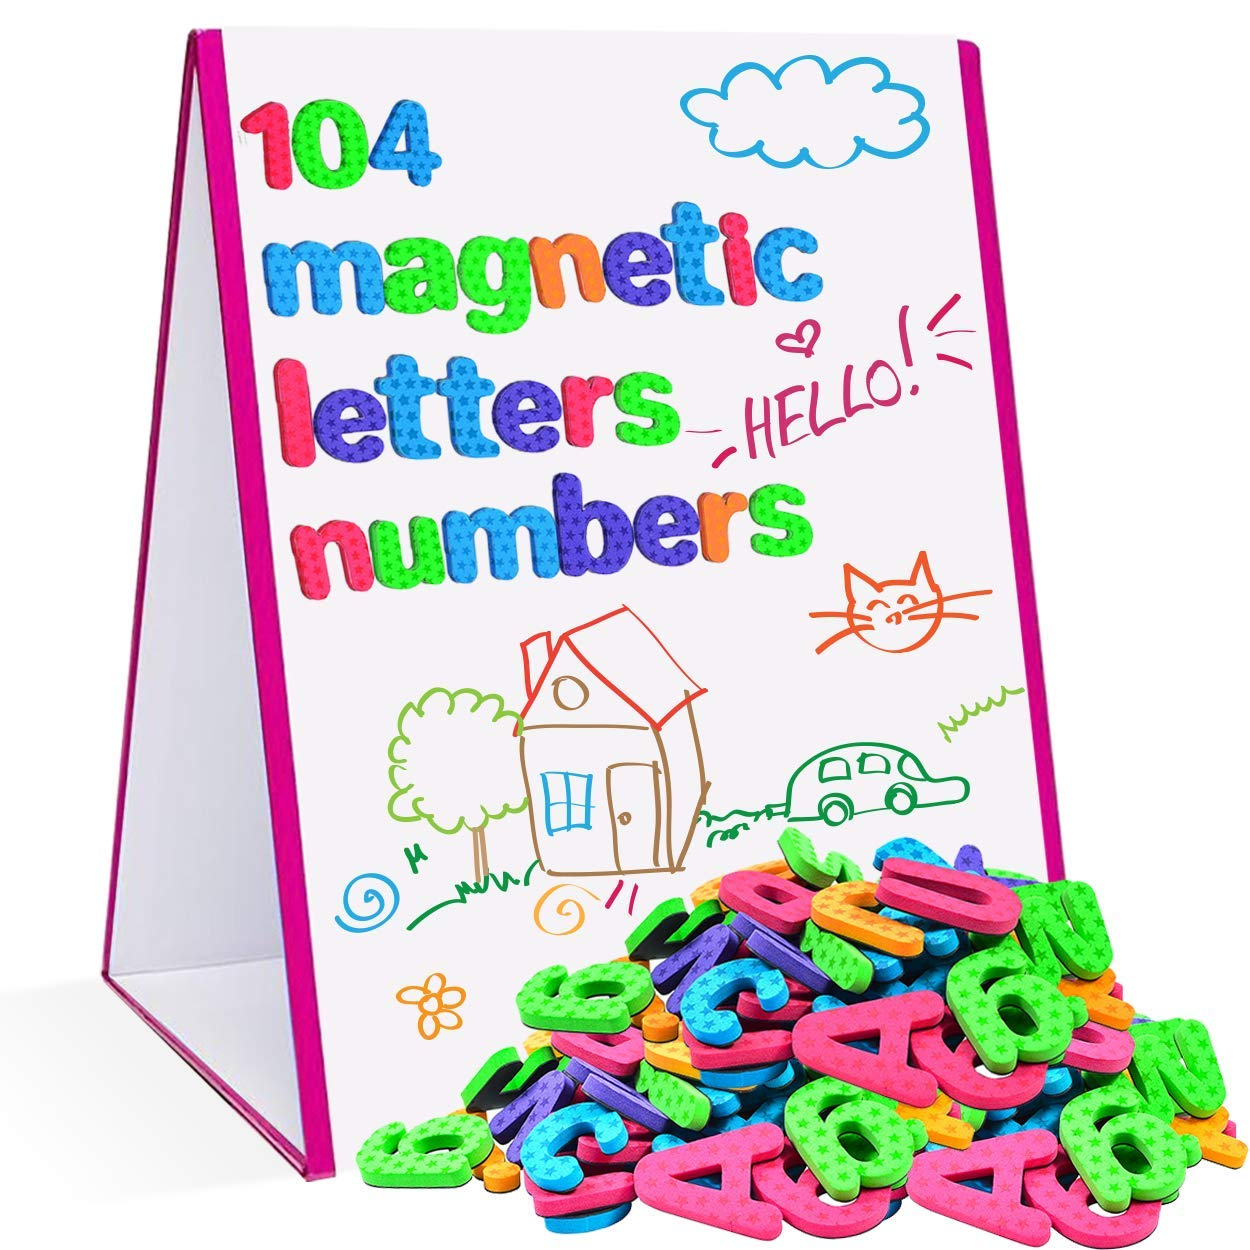 Star Right Magnetic Letters & Numbers with Easel for Kids - Educational Alphabet Magnets for Learning -Includes 104 Magnets with 1 Dry Erase Magnetic Easel - Learning Toys for 4+ Year Olds by Star Right